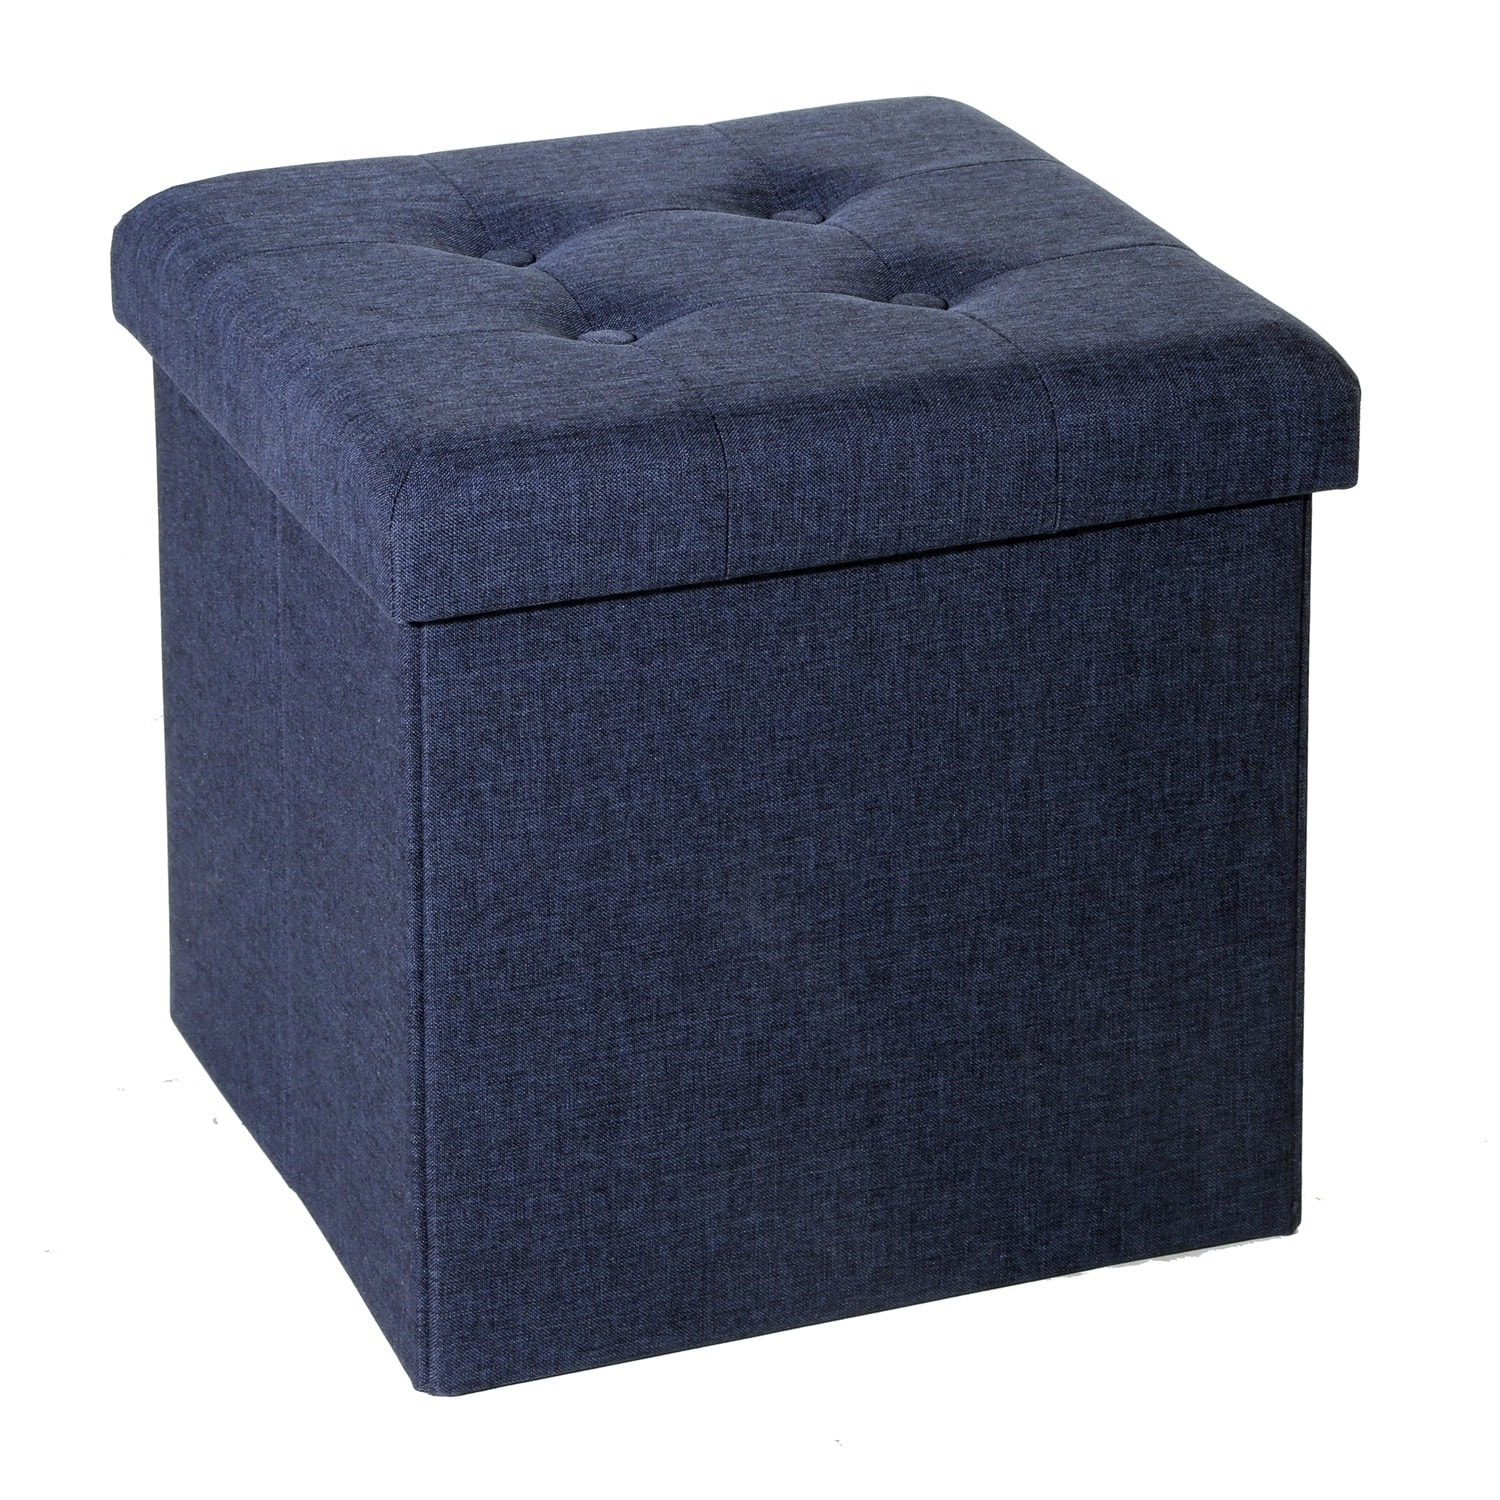 Marvelous Buy Storage Cube Online At Overstock Our Best Living Room Alphanode Cool Chair Designs And Ideas Alphanodeonline